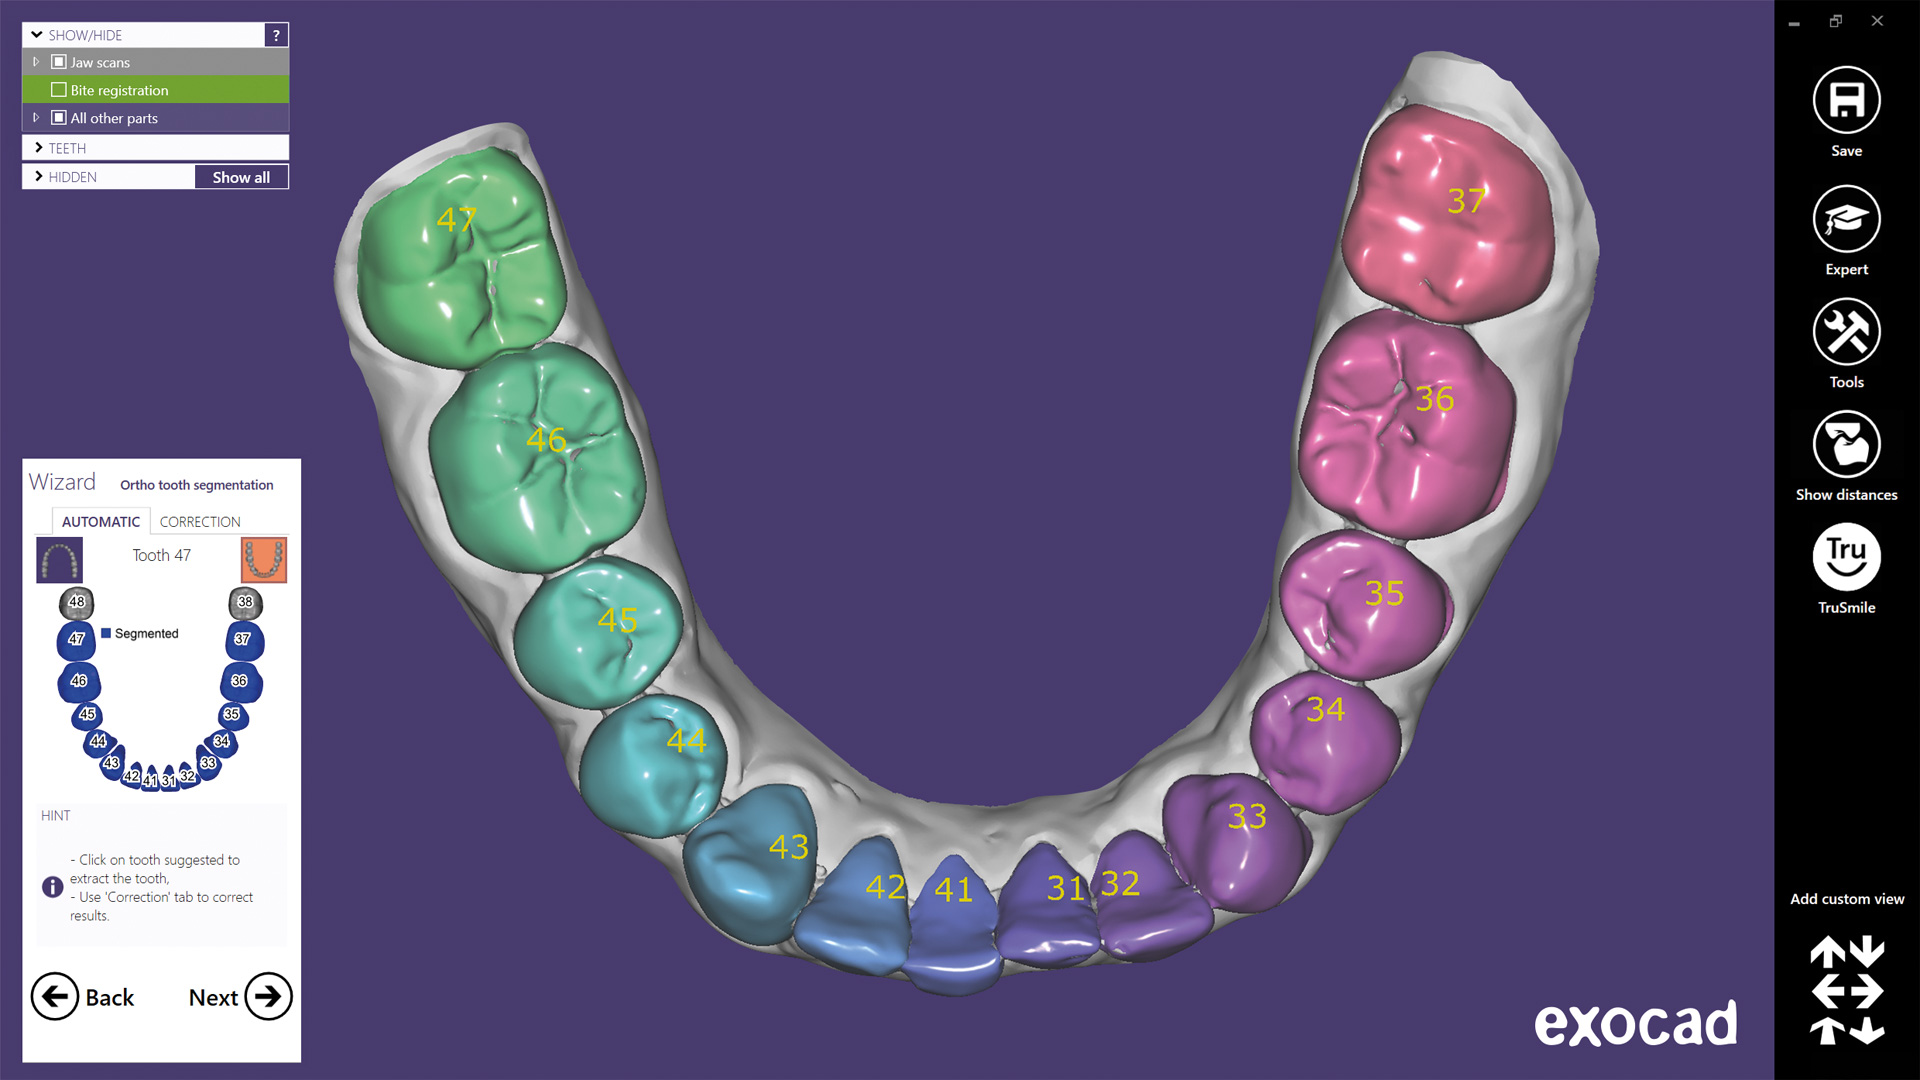 One-click tooth segmentation